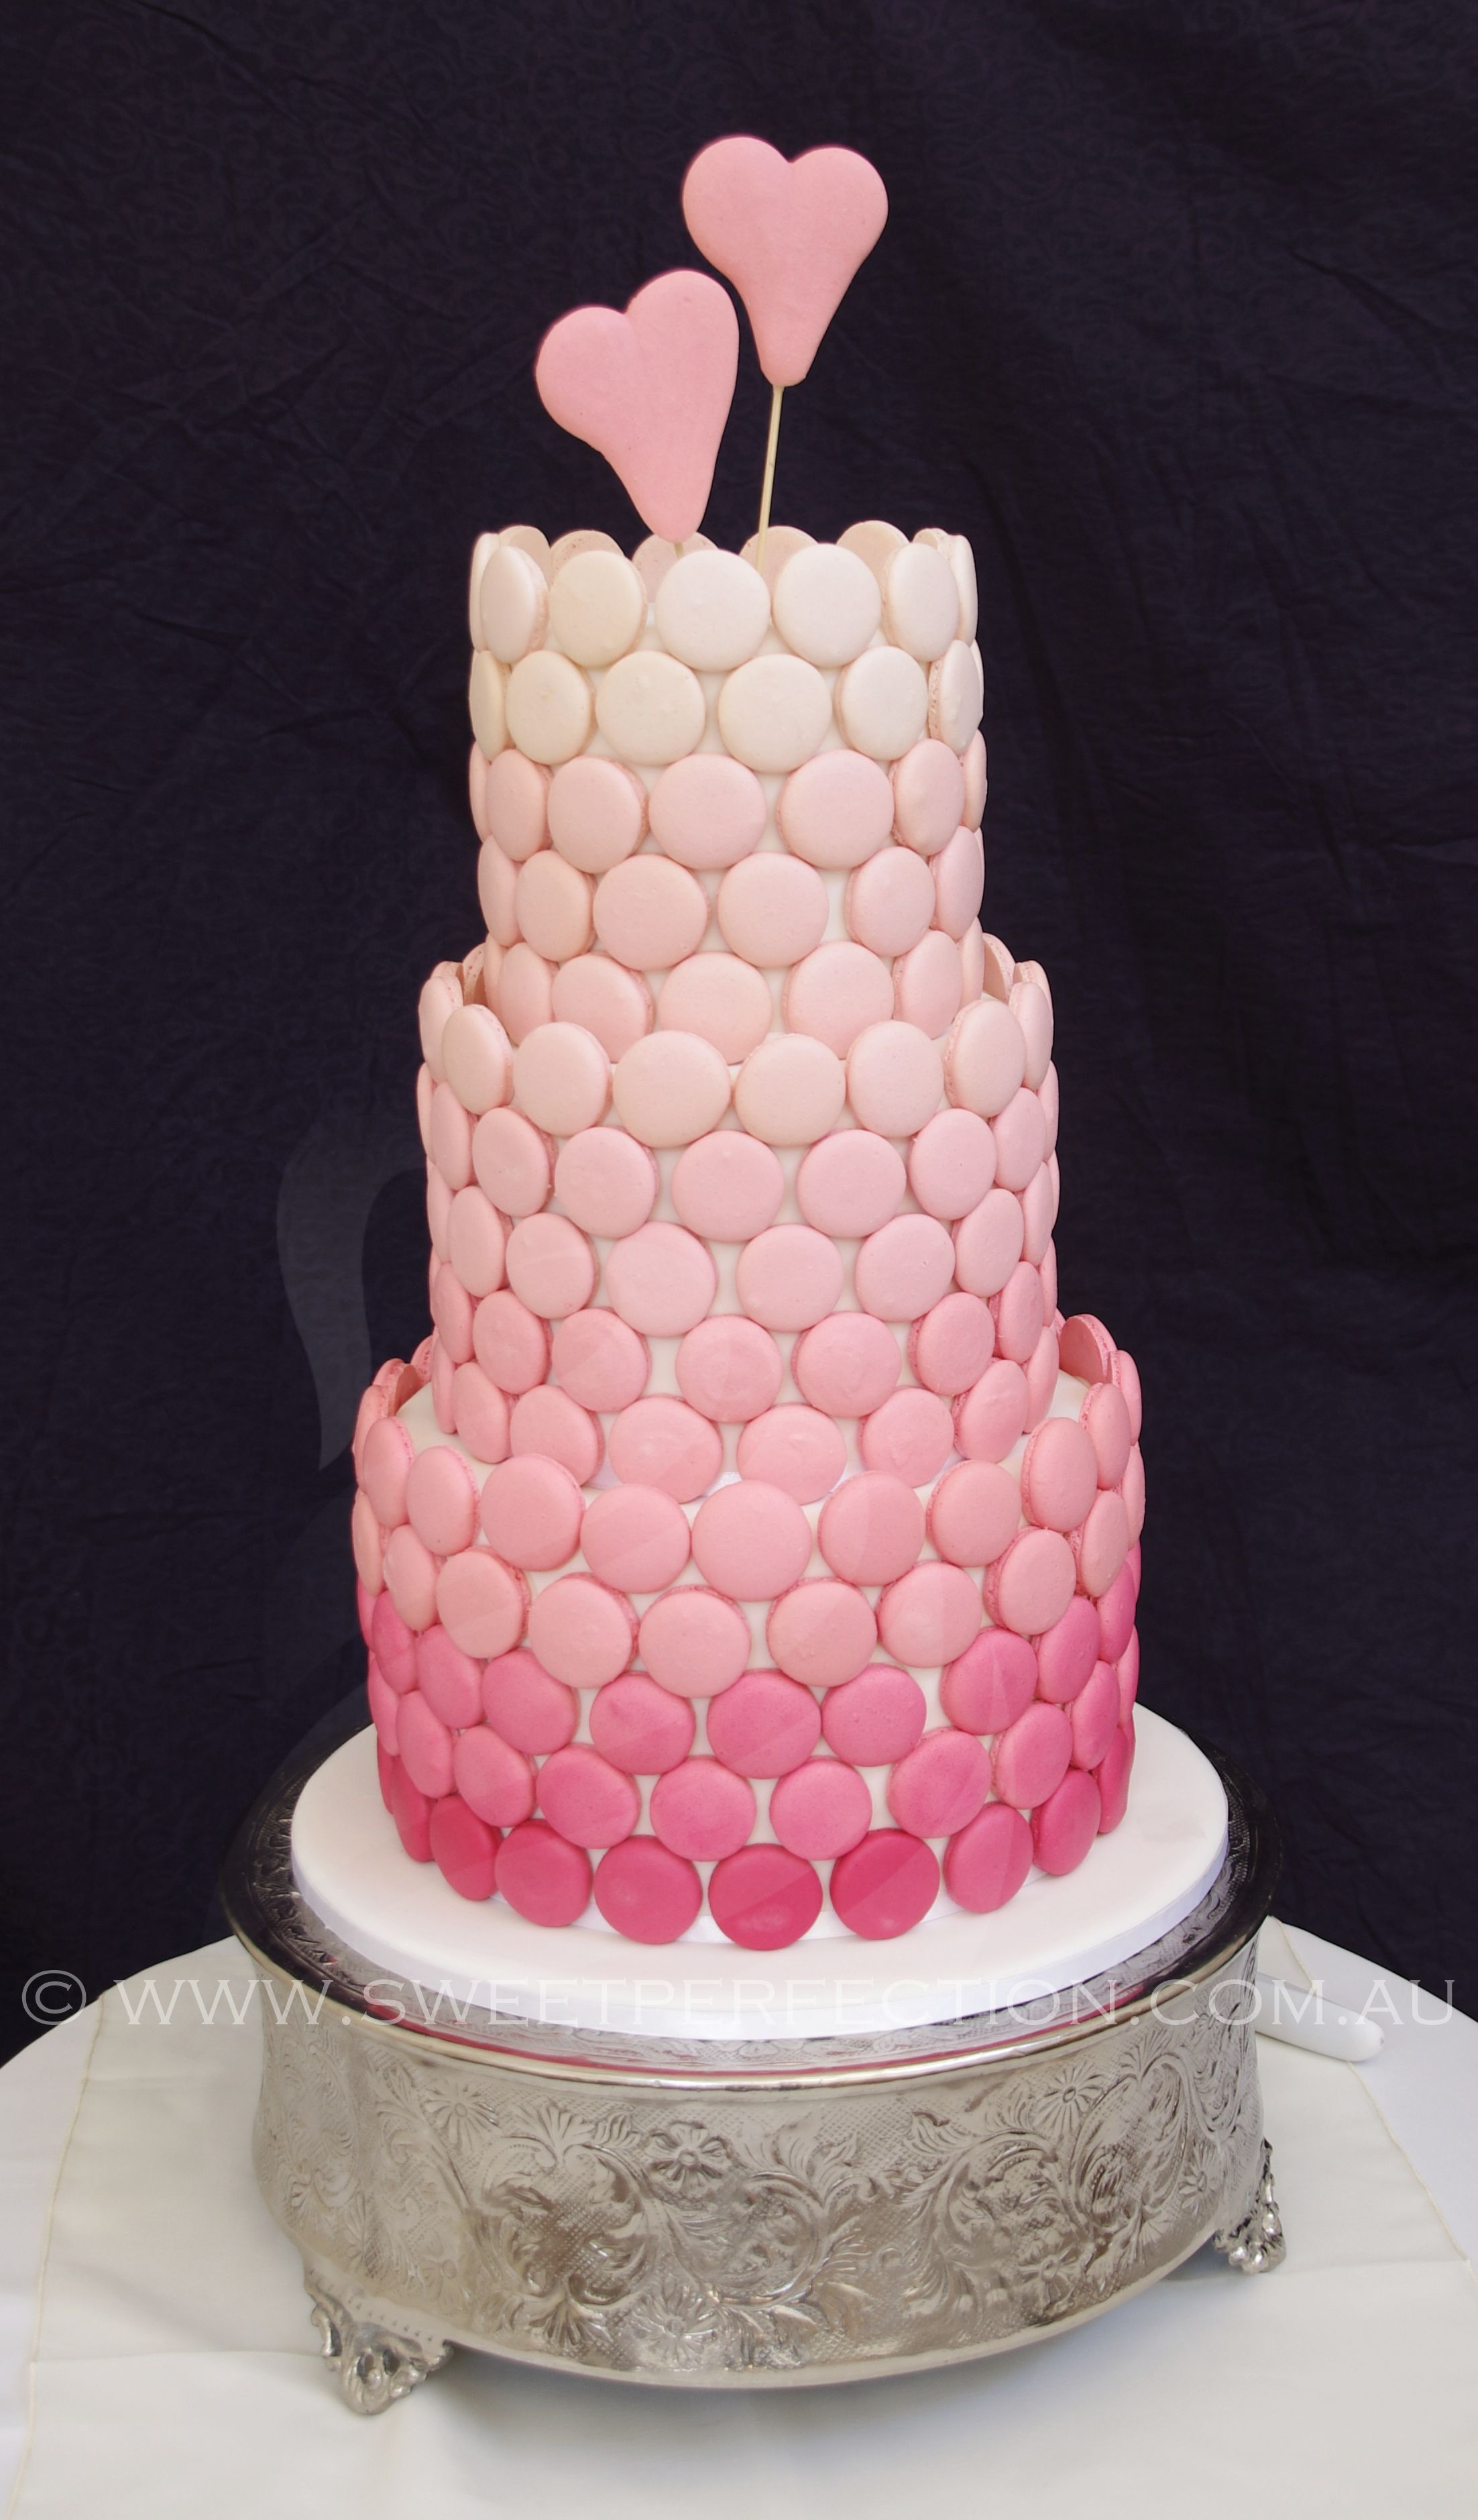 Another ombre macaron wedding cake based on our original design ...